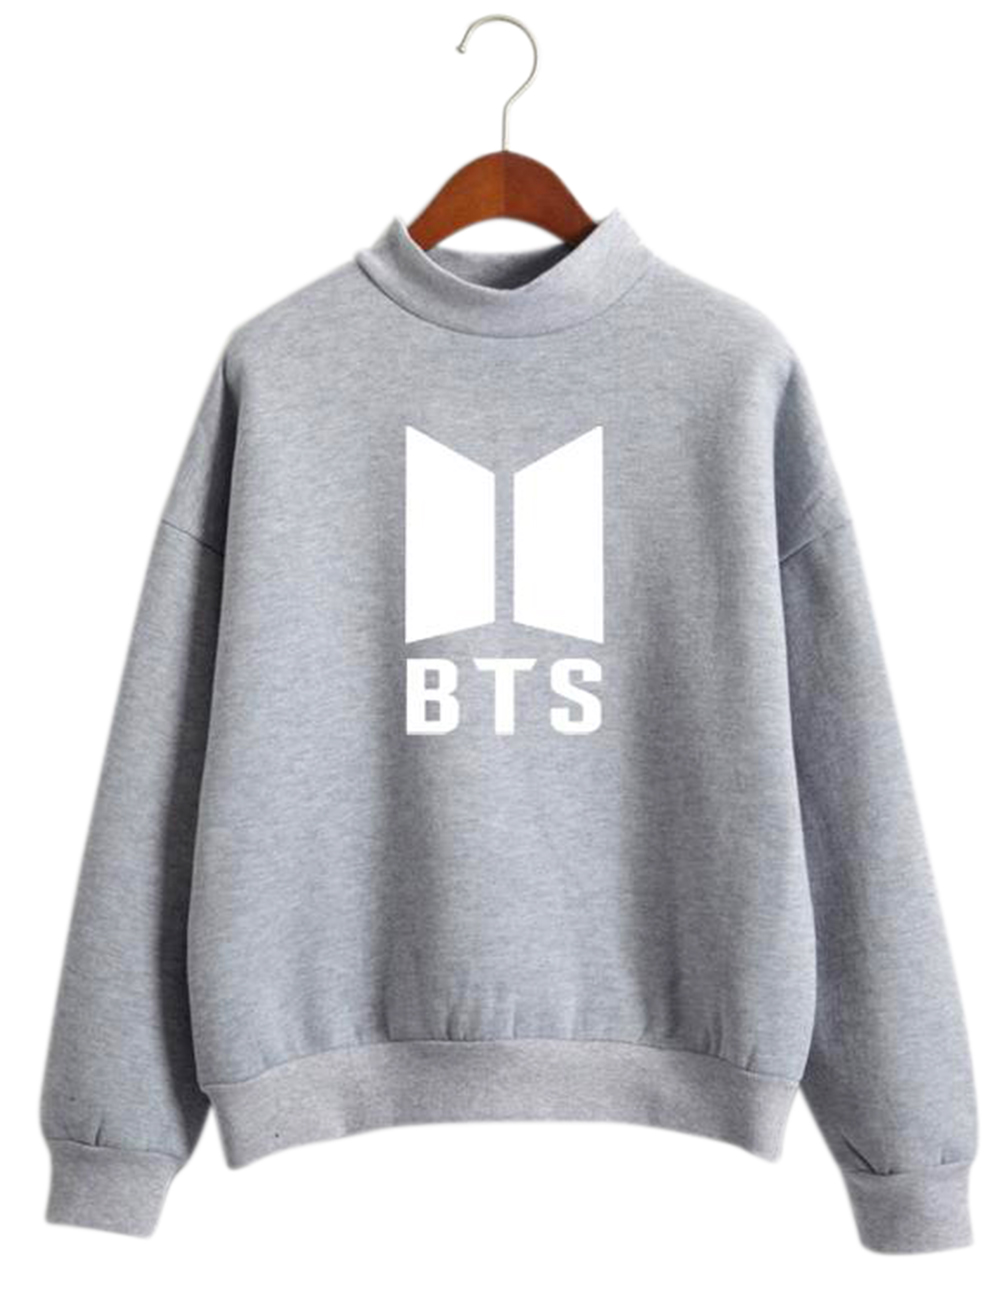 Unisex BTS Letters Printing Sweater